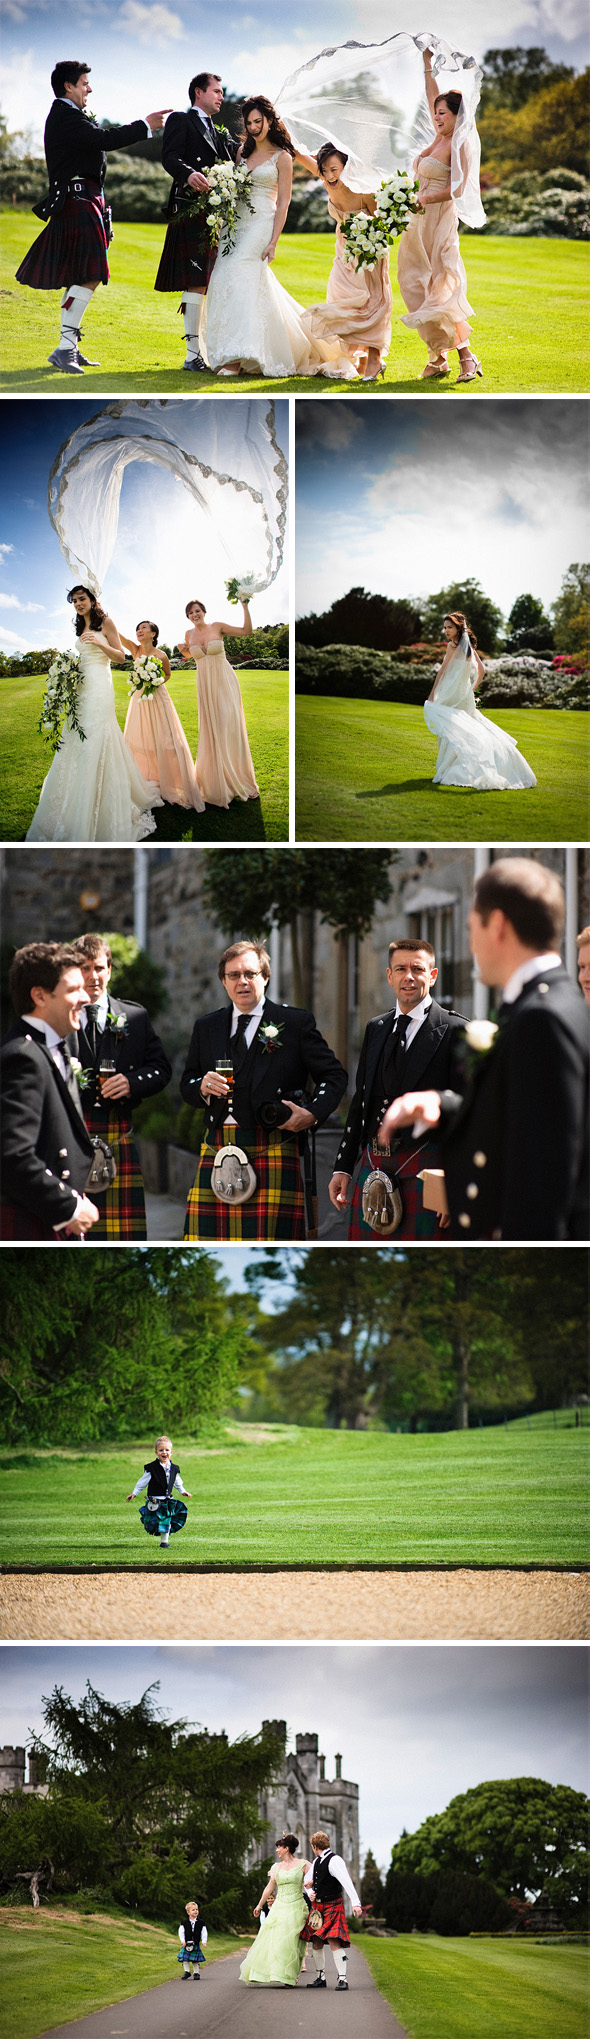 edinburgh destination weddings Edinburgh, Scotland Destination Wedding